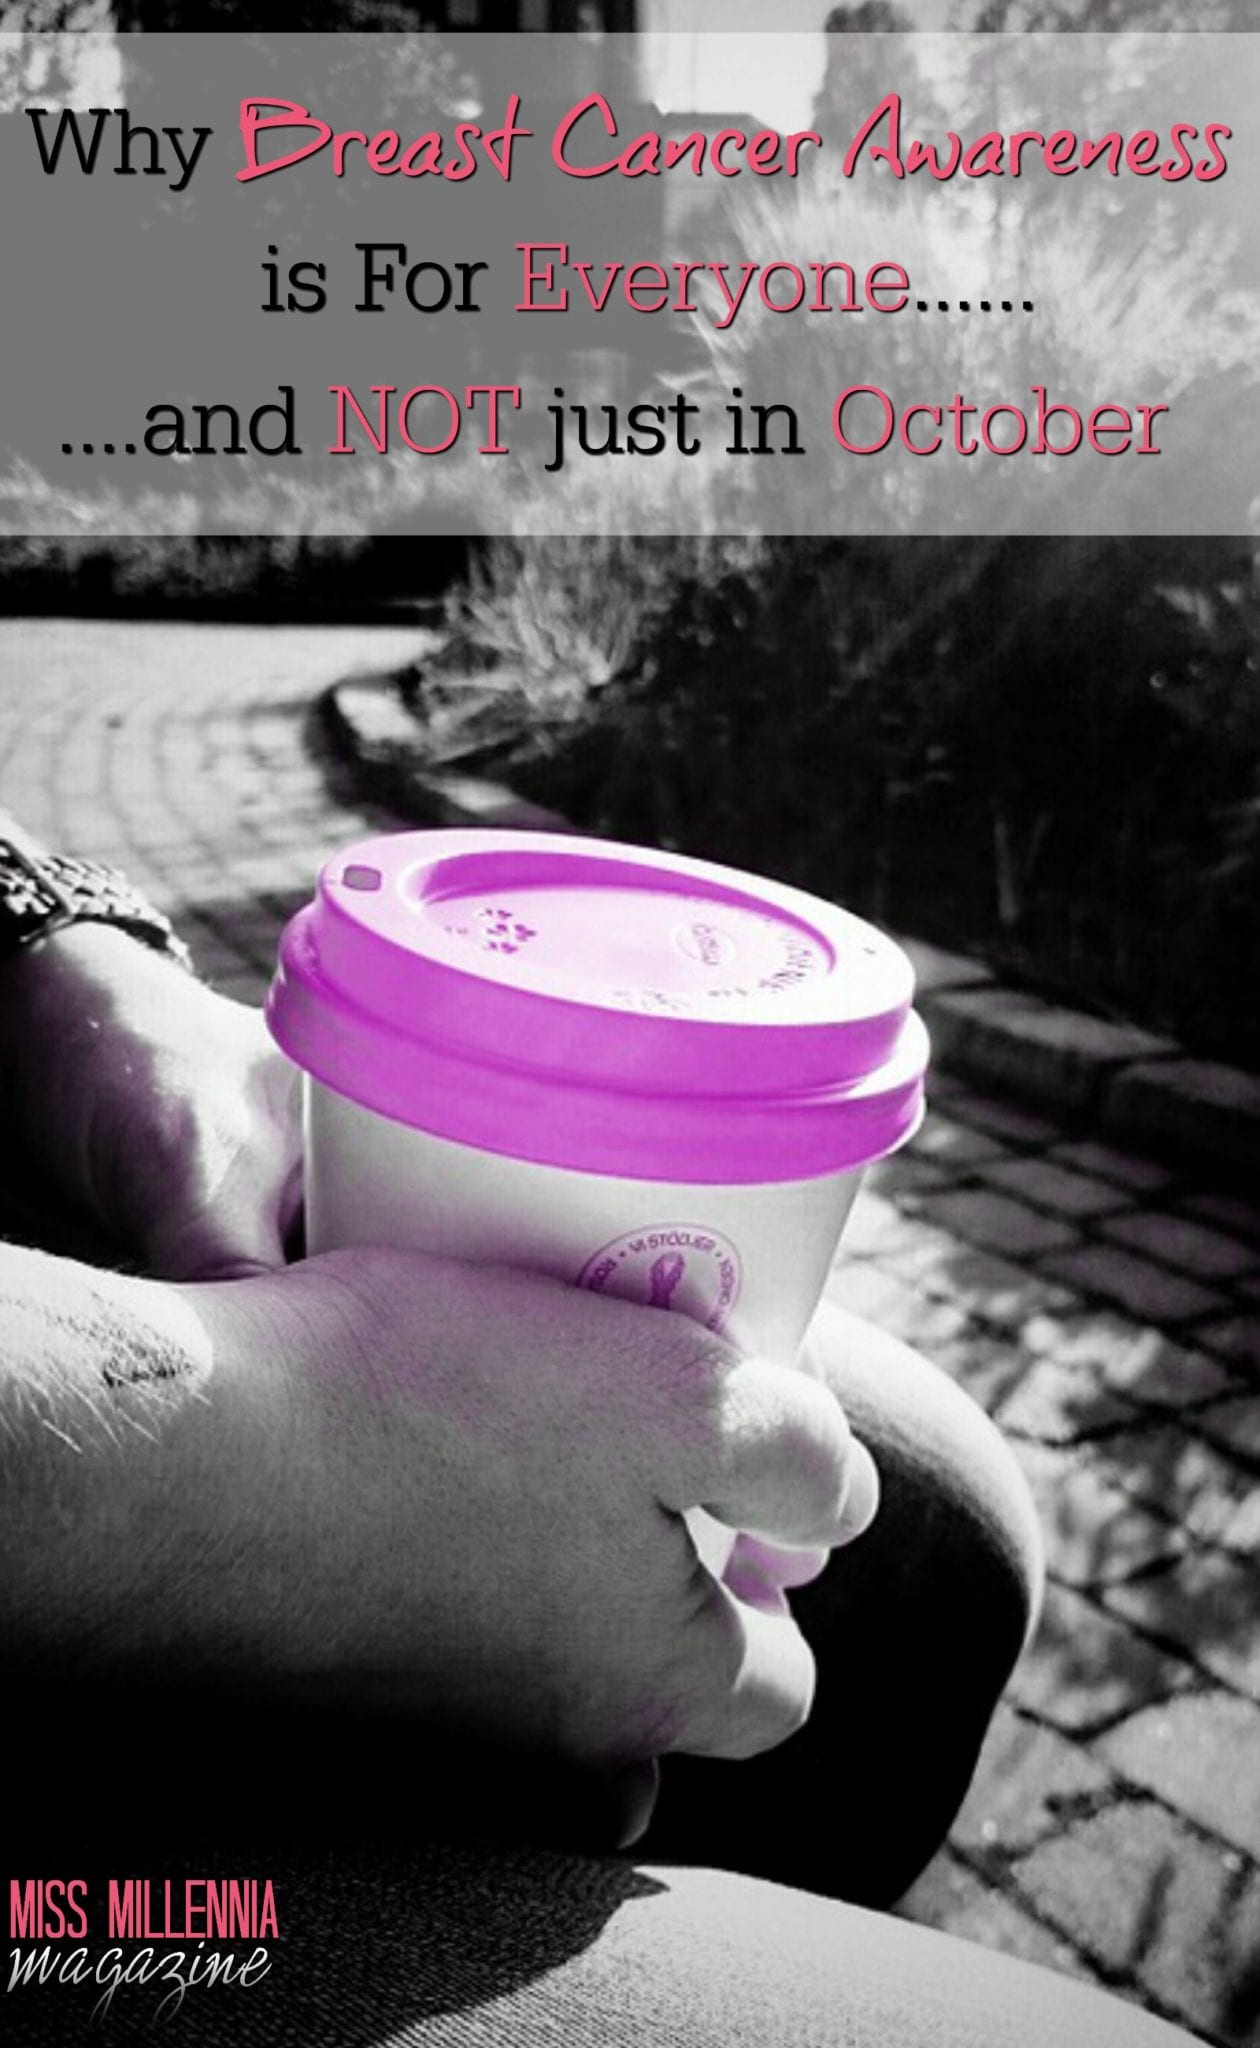 Here's Why Breast Cancer Awareness is For Everyone...and Not Just in October